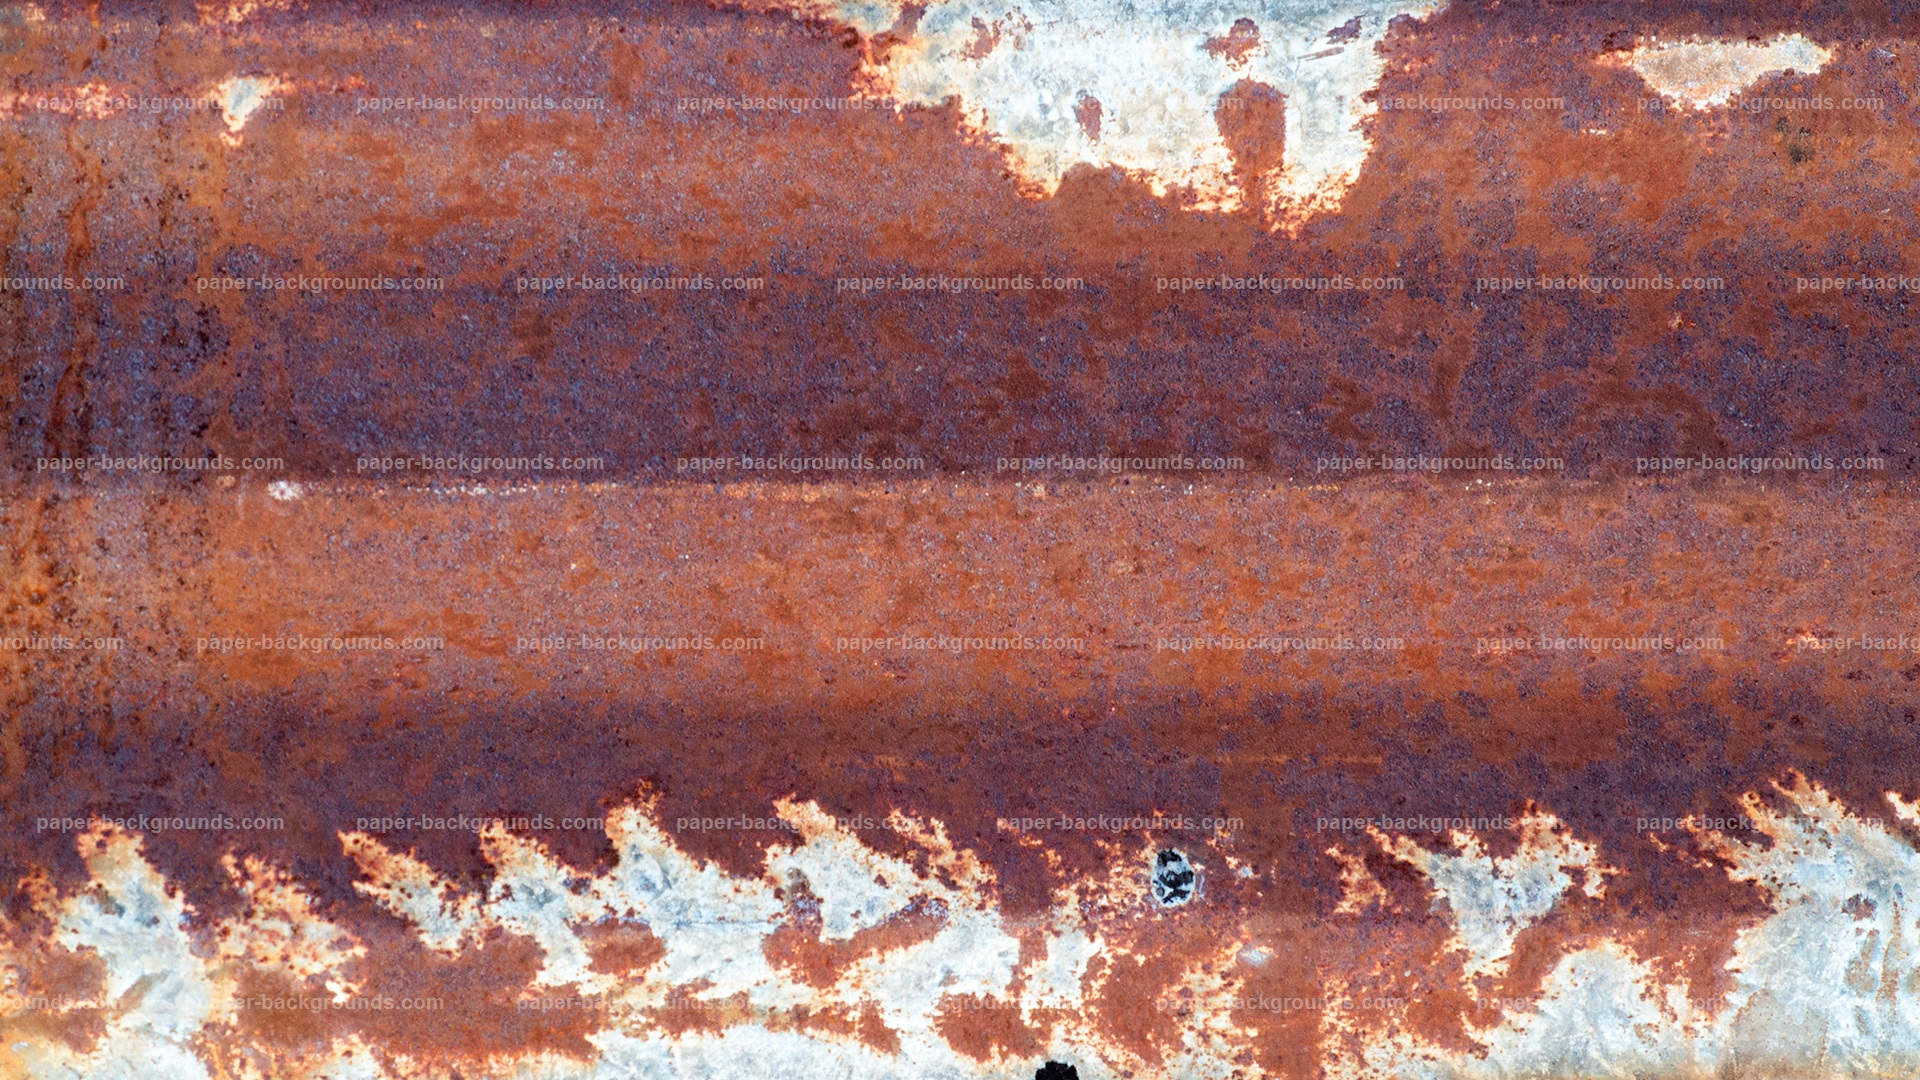 Paper backgrounds stones textures royalty free hd paper - Paper Backgrounds Old Rusty Metal Panel Hd